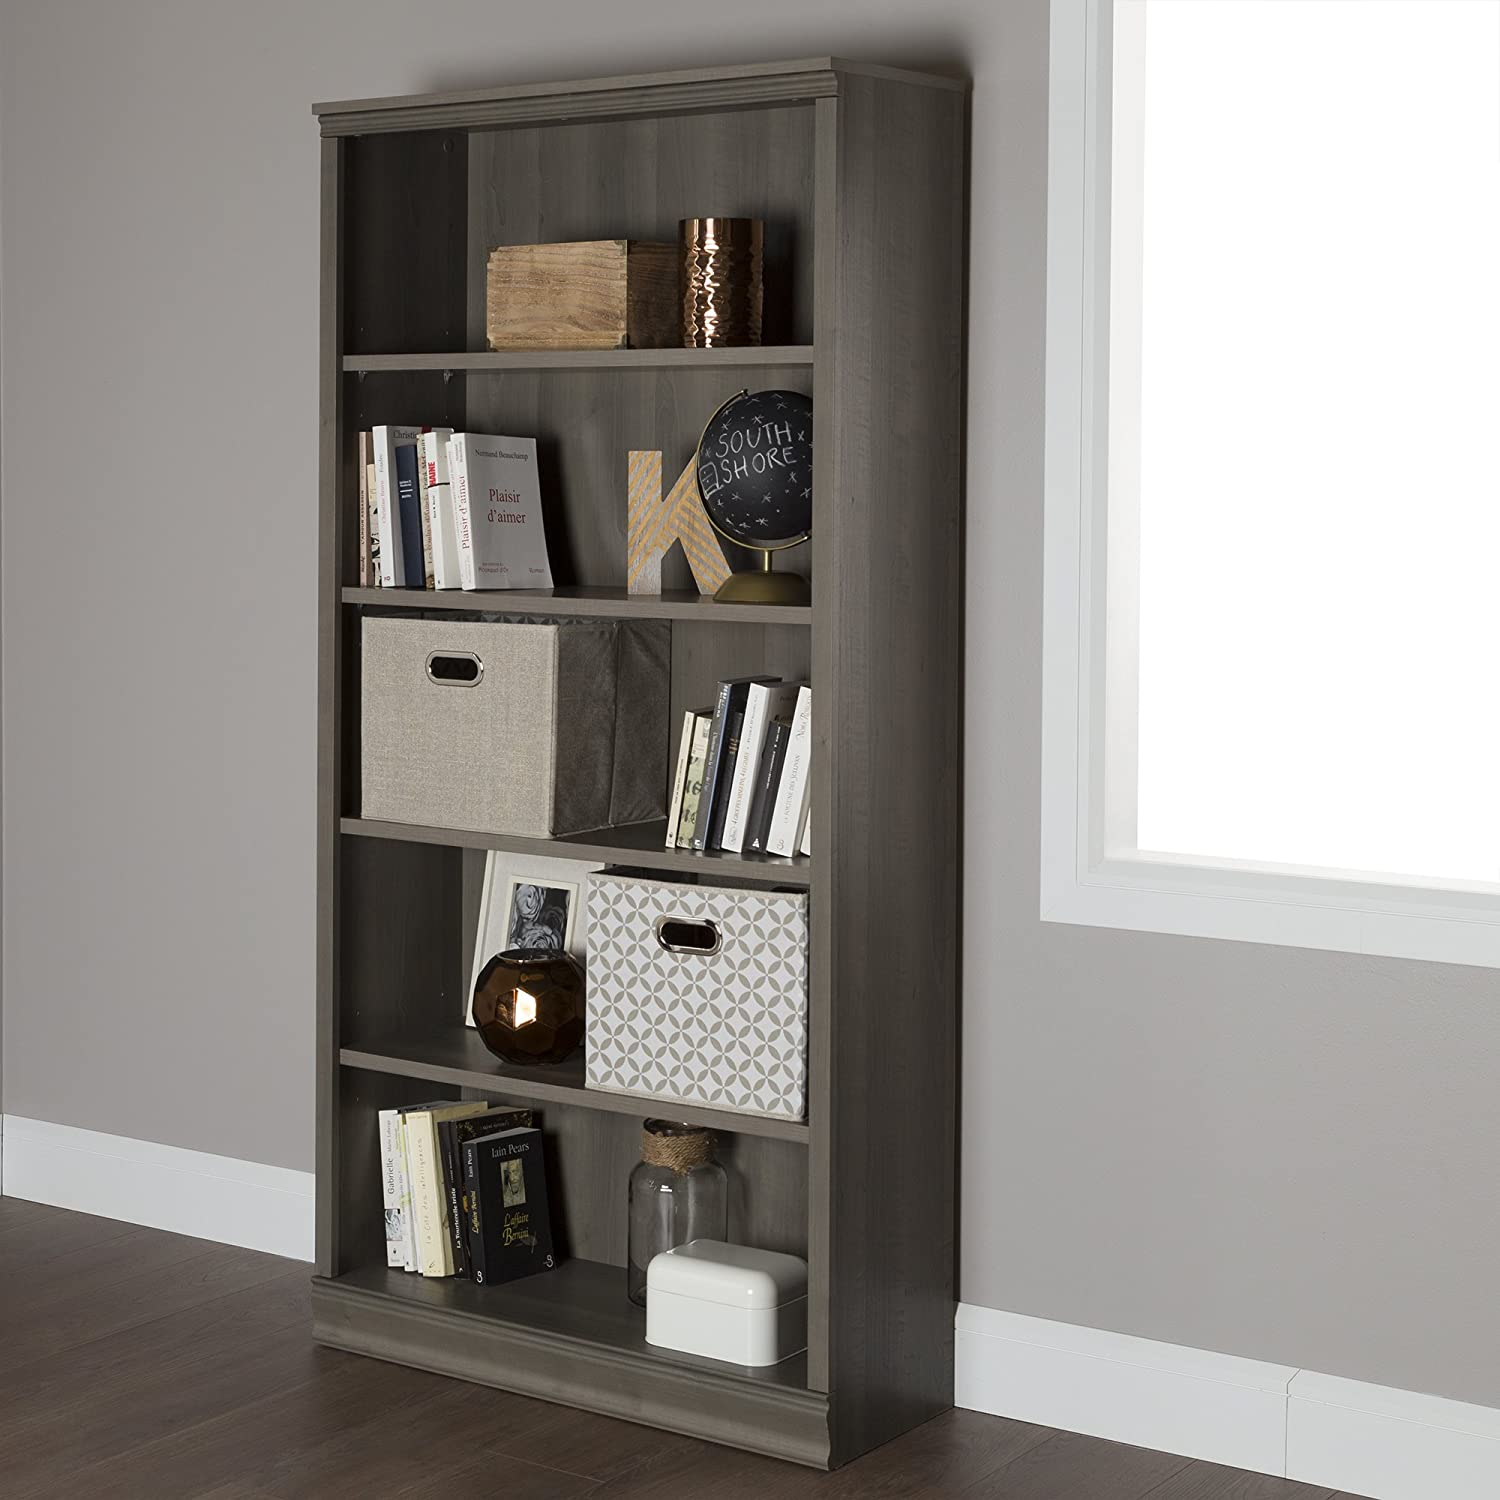 South Shore Morgan 5-Shelf Bookcase - Gray Maple